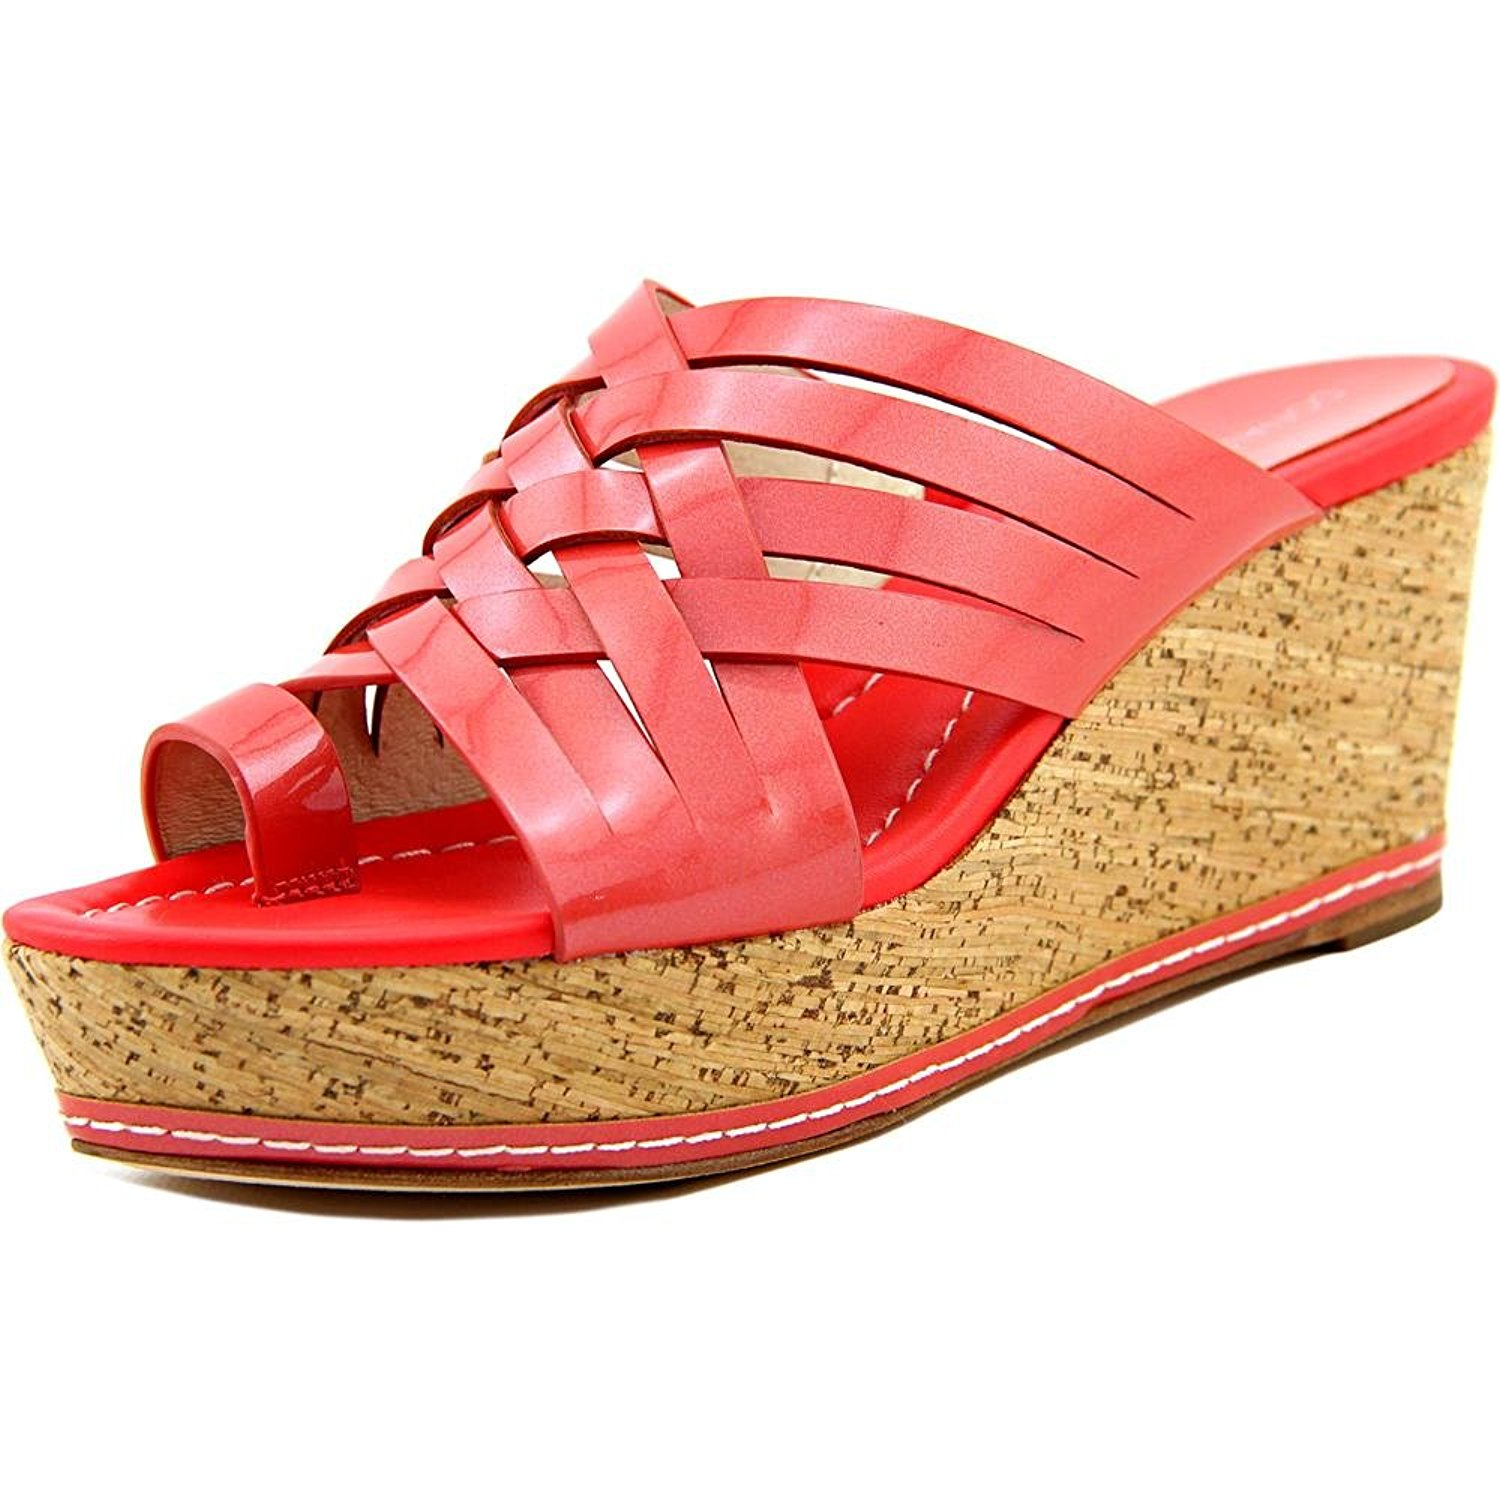 Donald J Pliner Flore Open Toe Patent Leather Wedge Sandal by Donald J Pliner